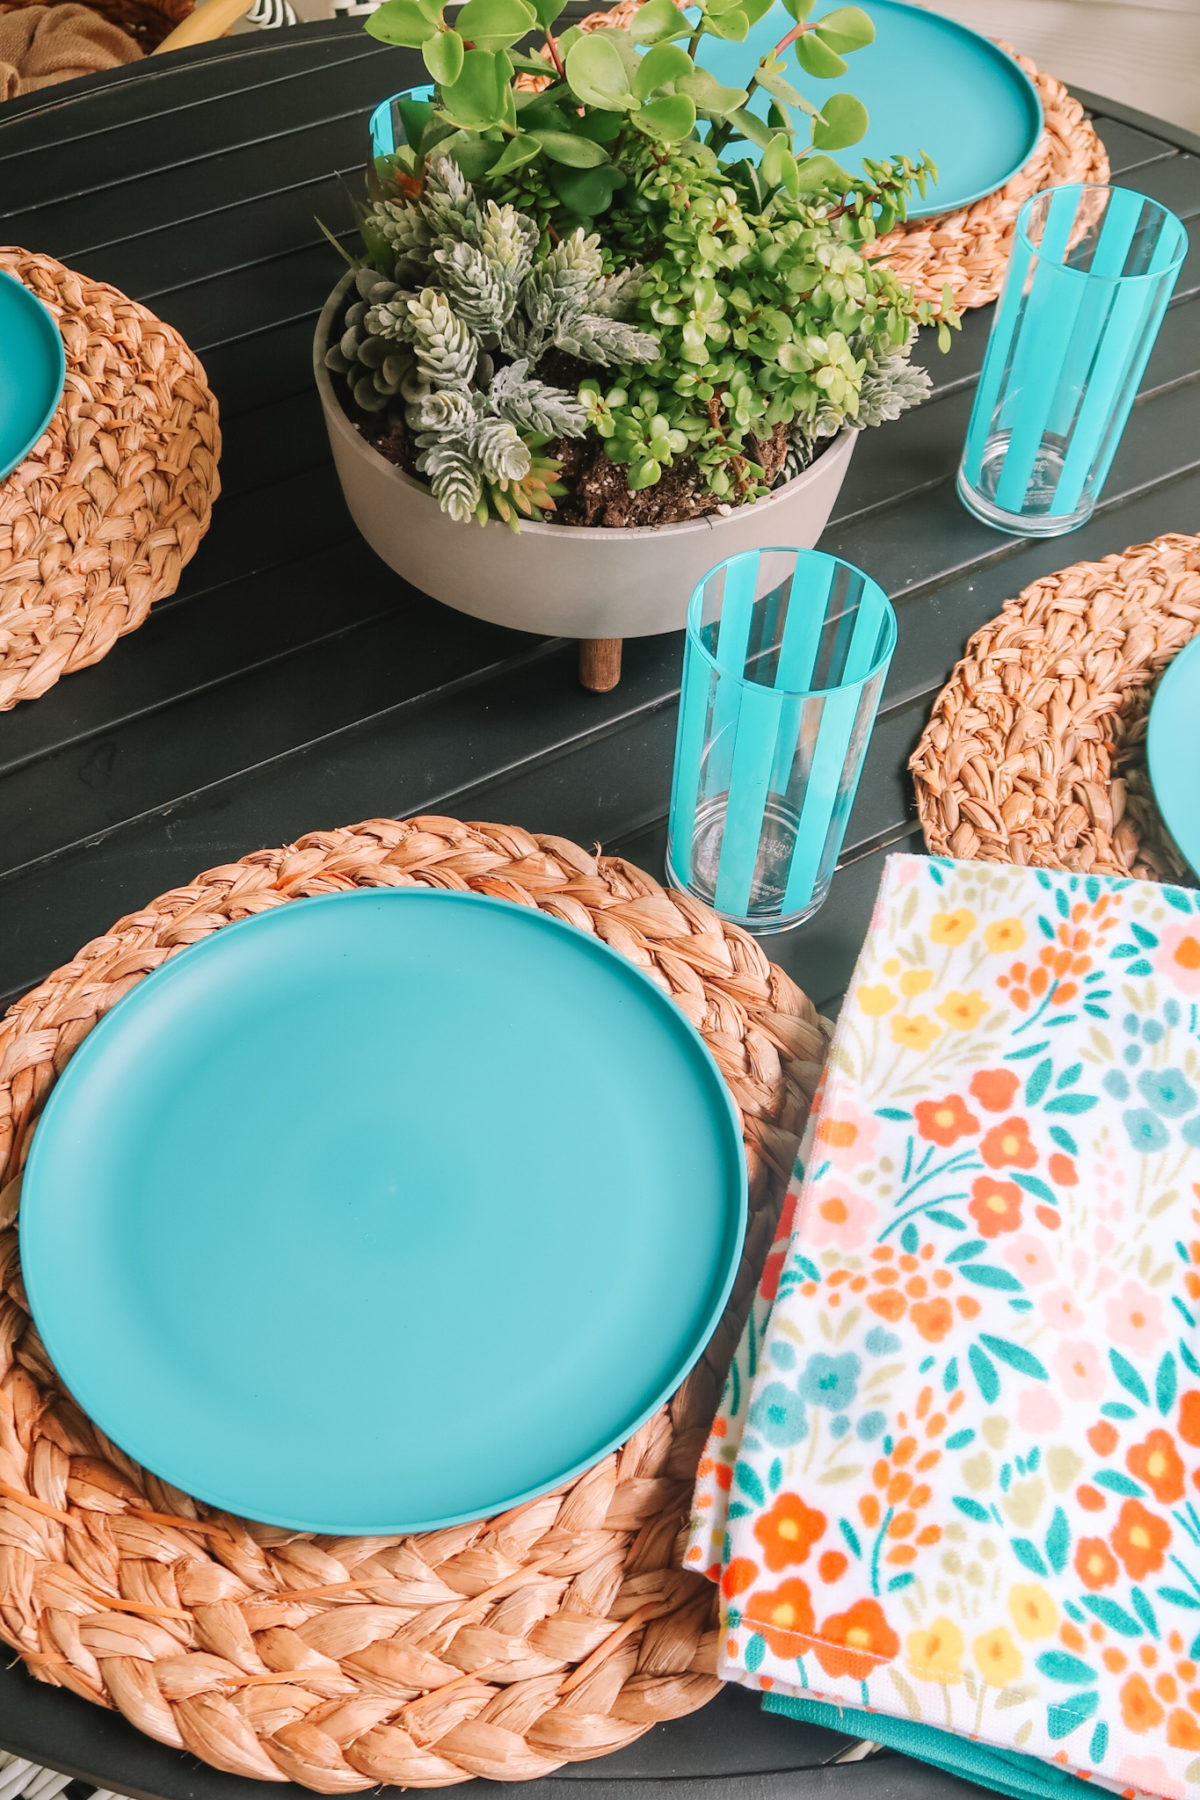 Walmart +, Patio Furniture, Hyacinth Placemat, dinner Plate, Kitchen Towel, Striped Tumbler, Succulents